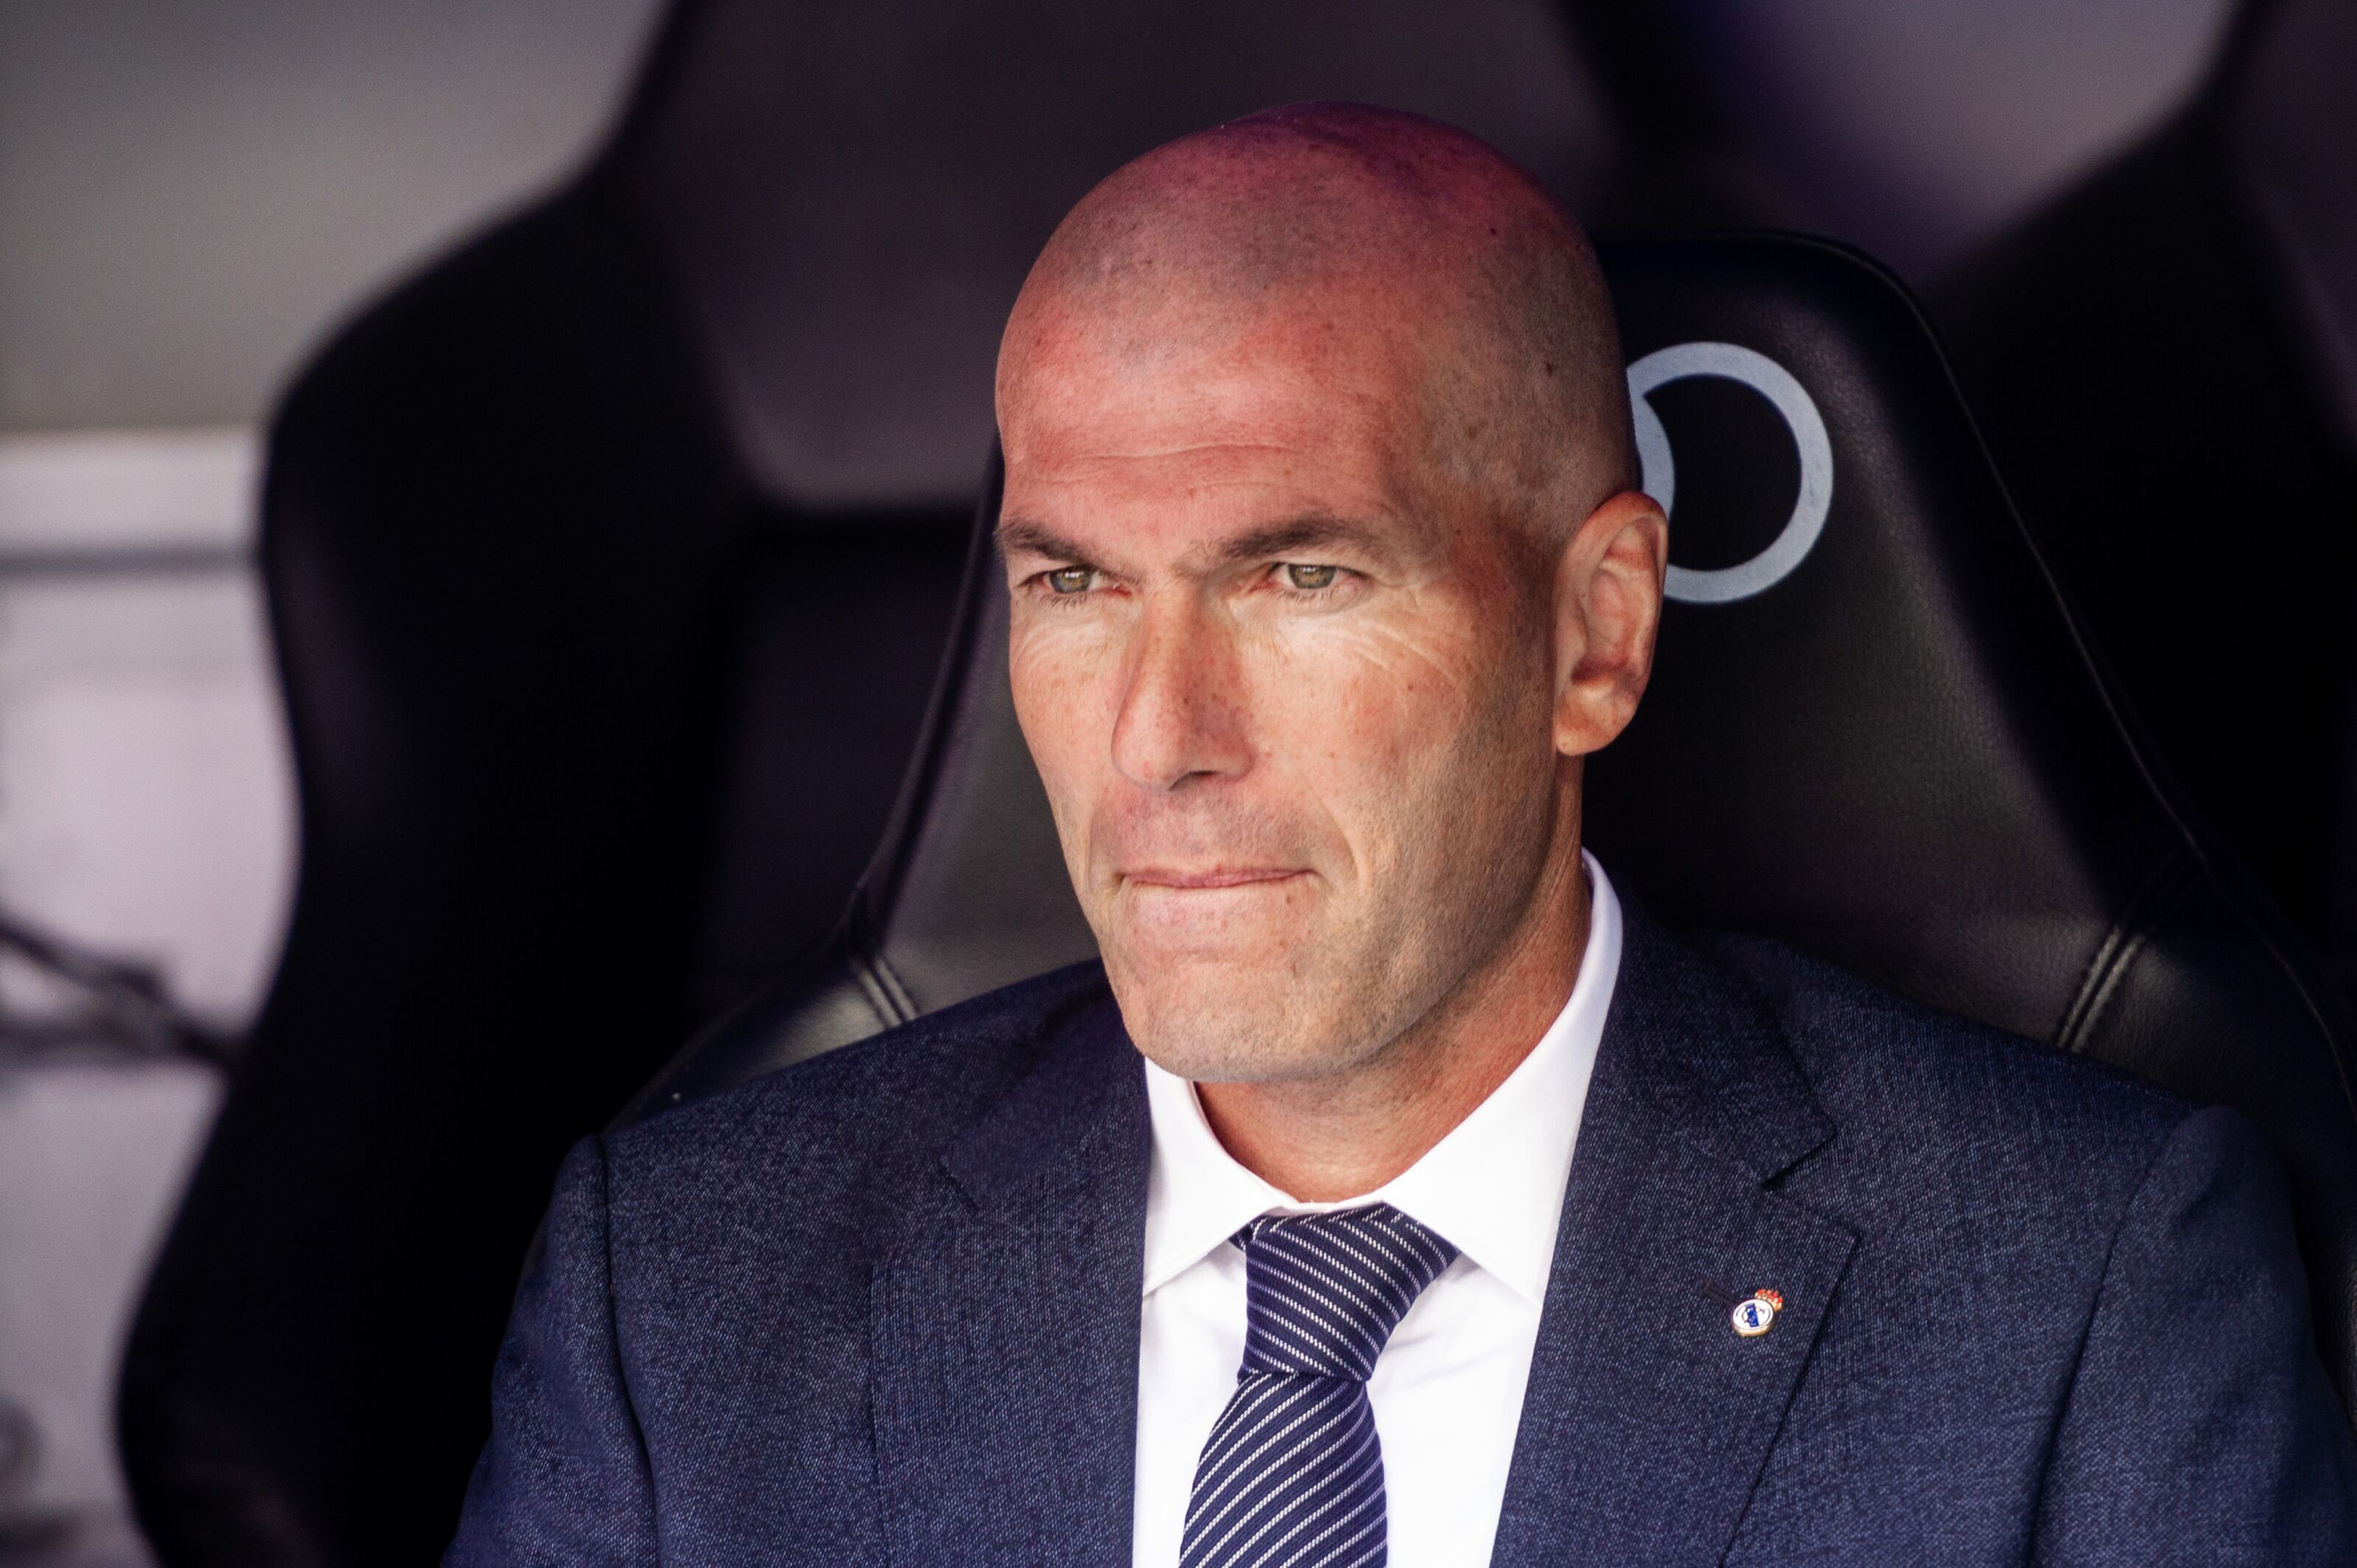 Real Madrid president shuts Zinedine Zidane's wishes regarding major transfer